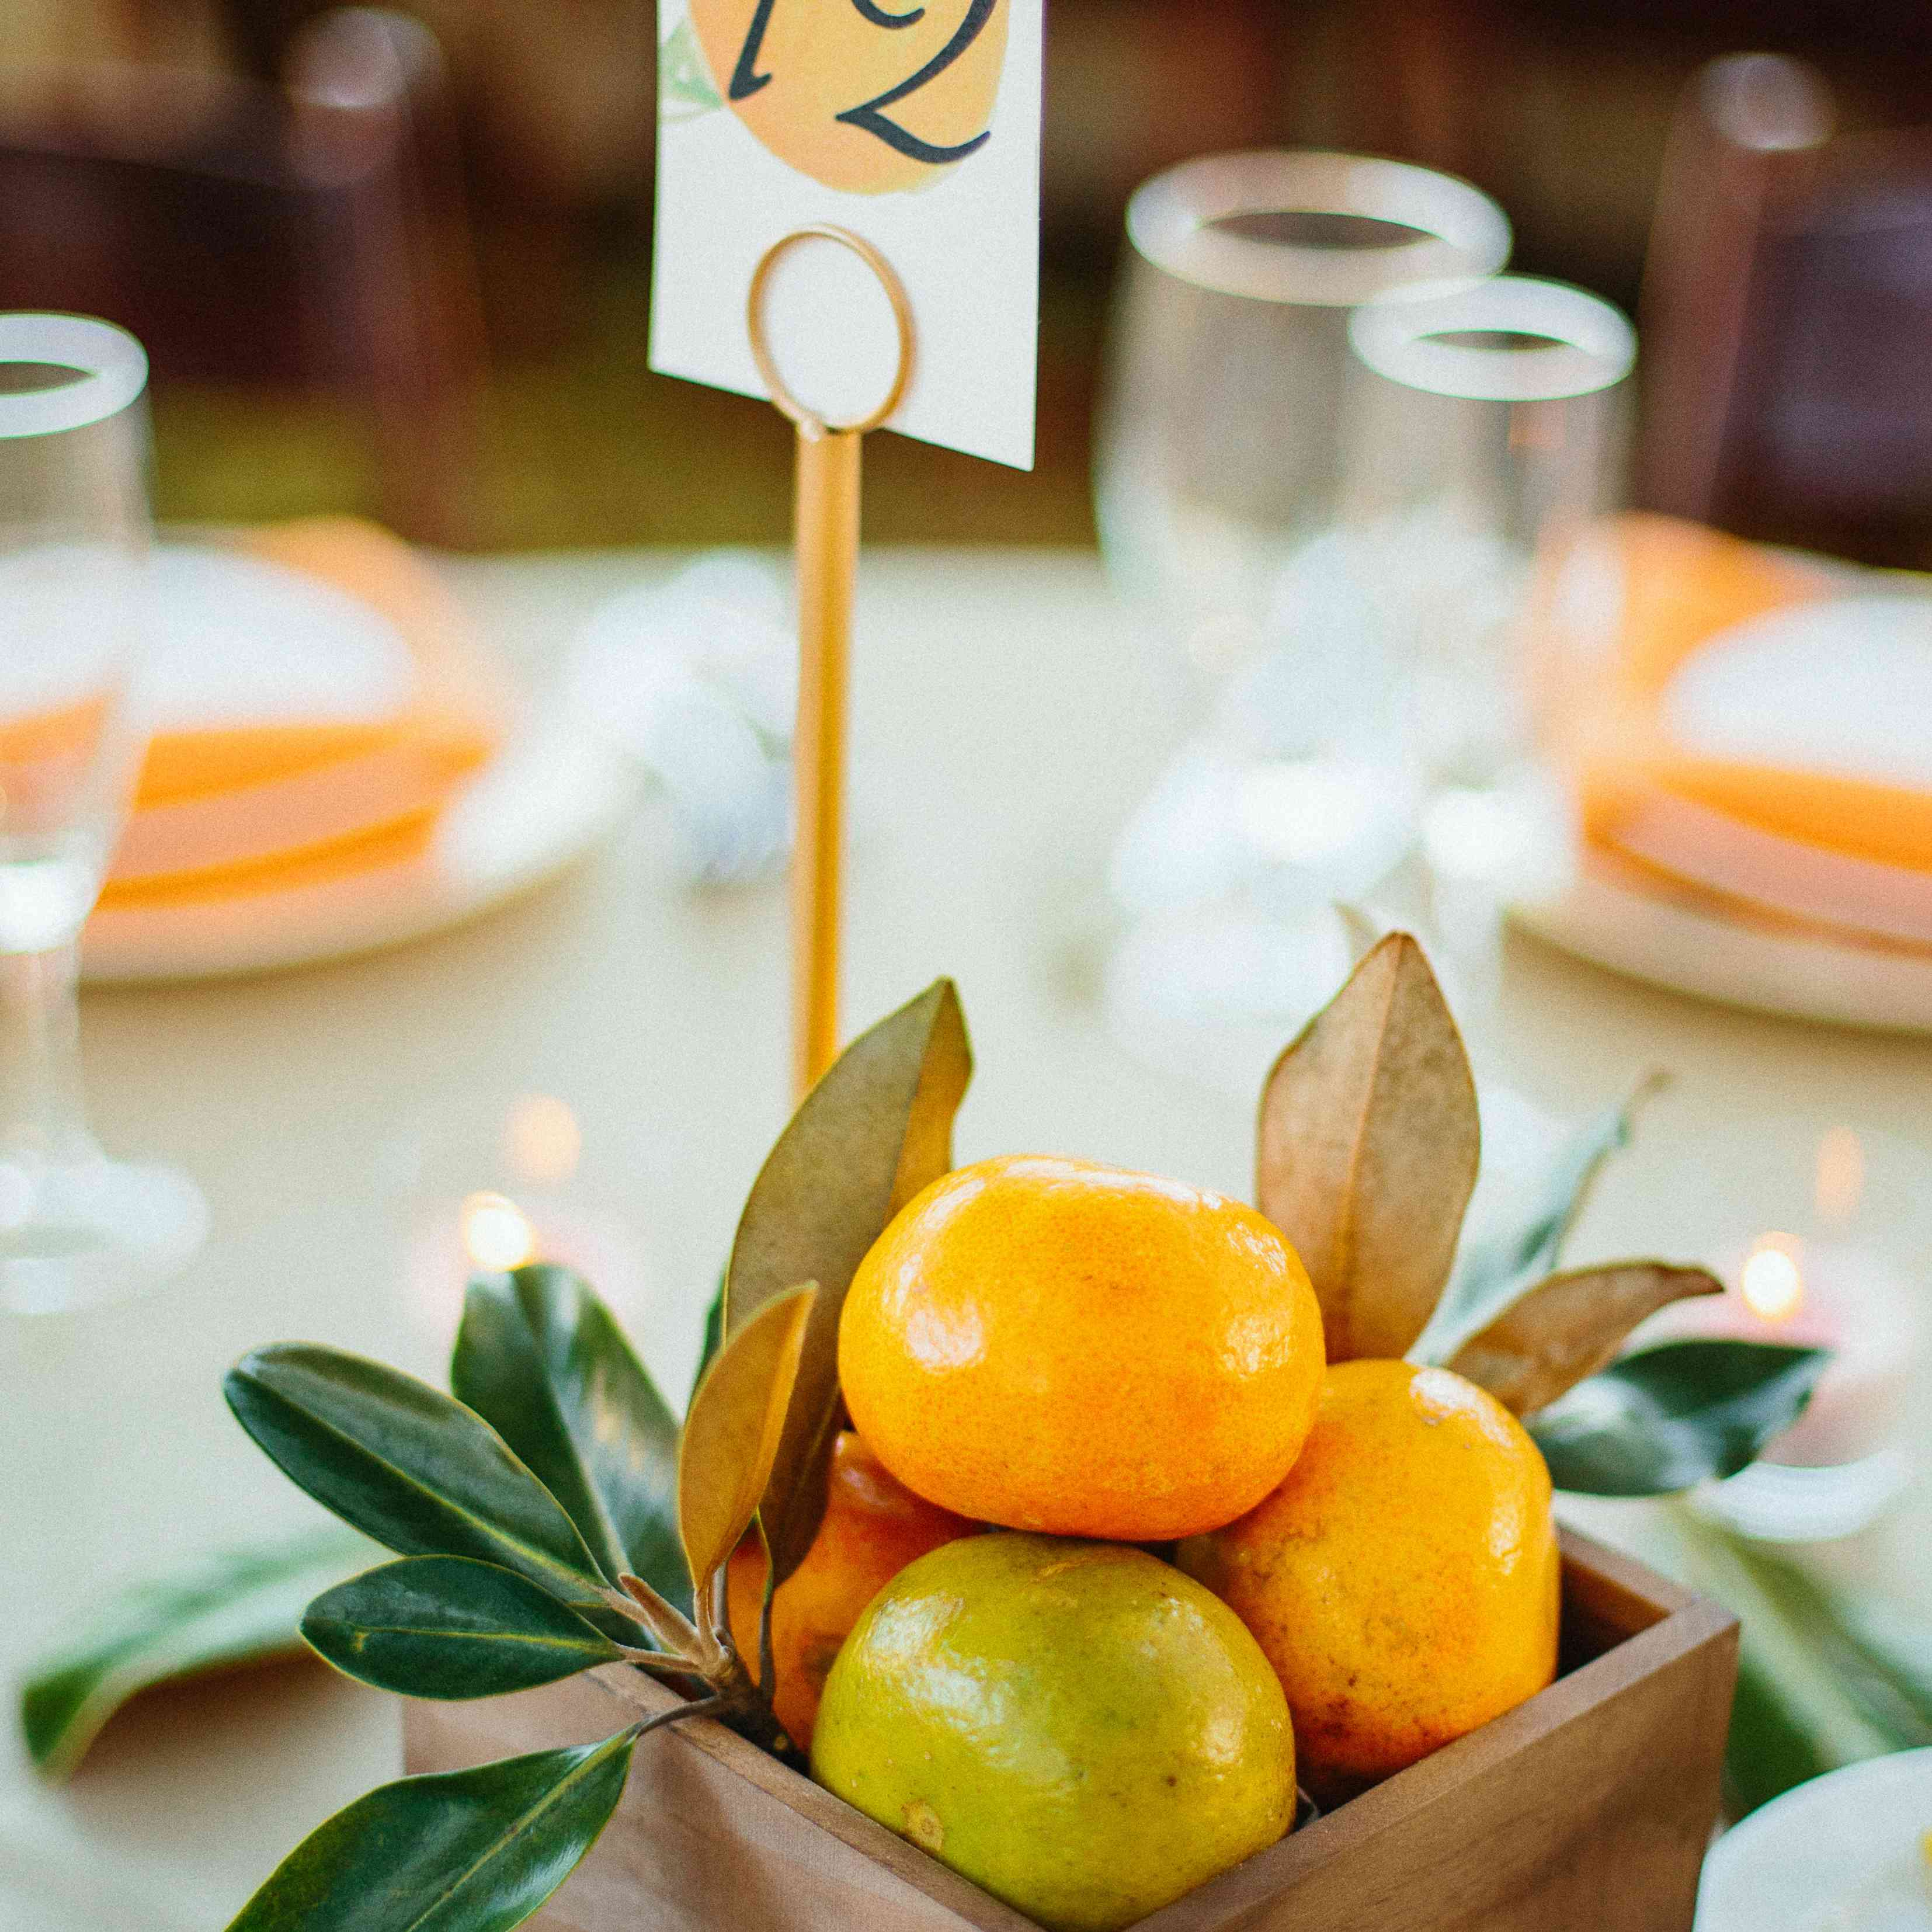 Oranges and sprigs of greenery in a wooden centerpiece